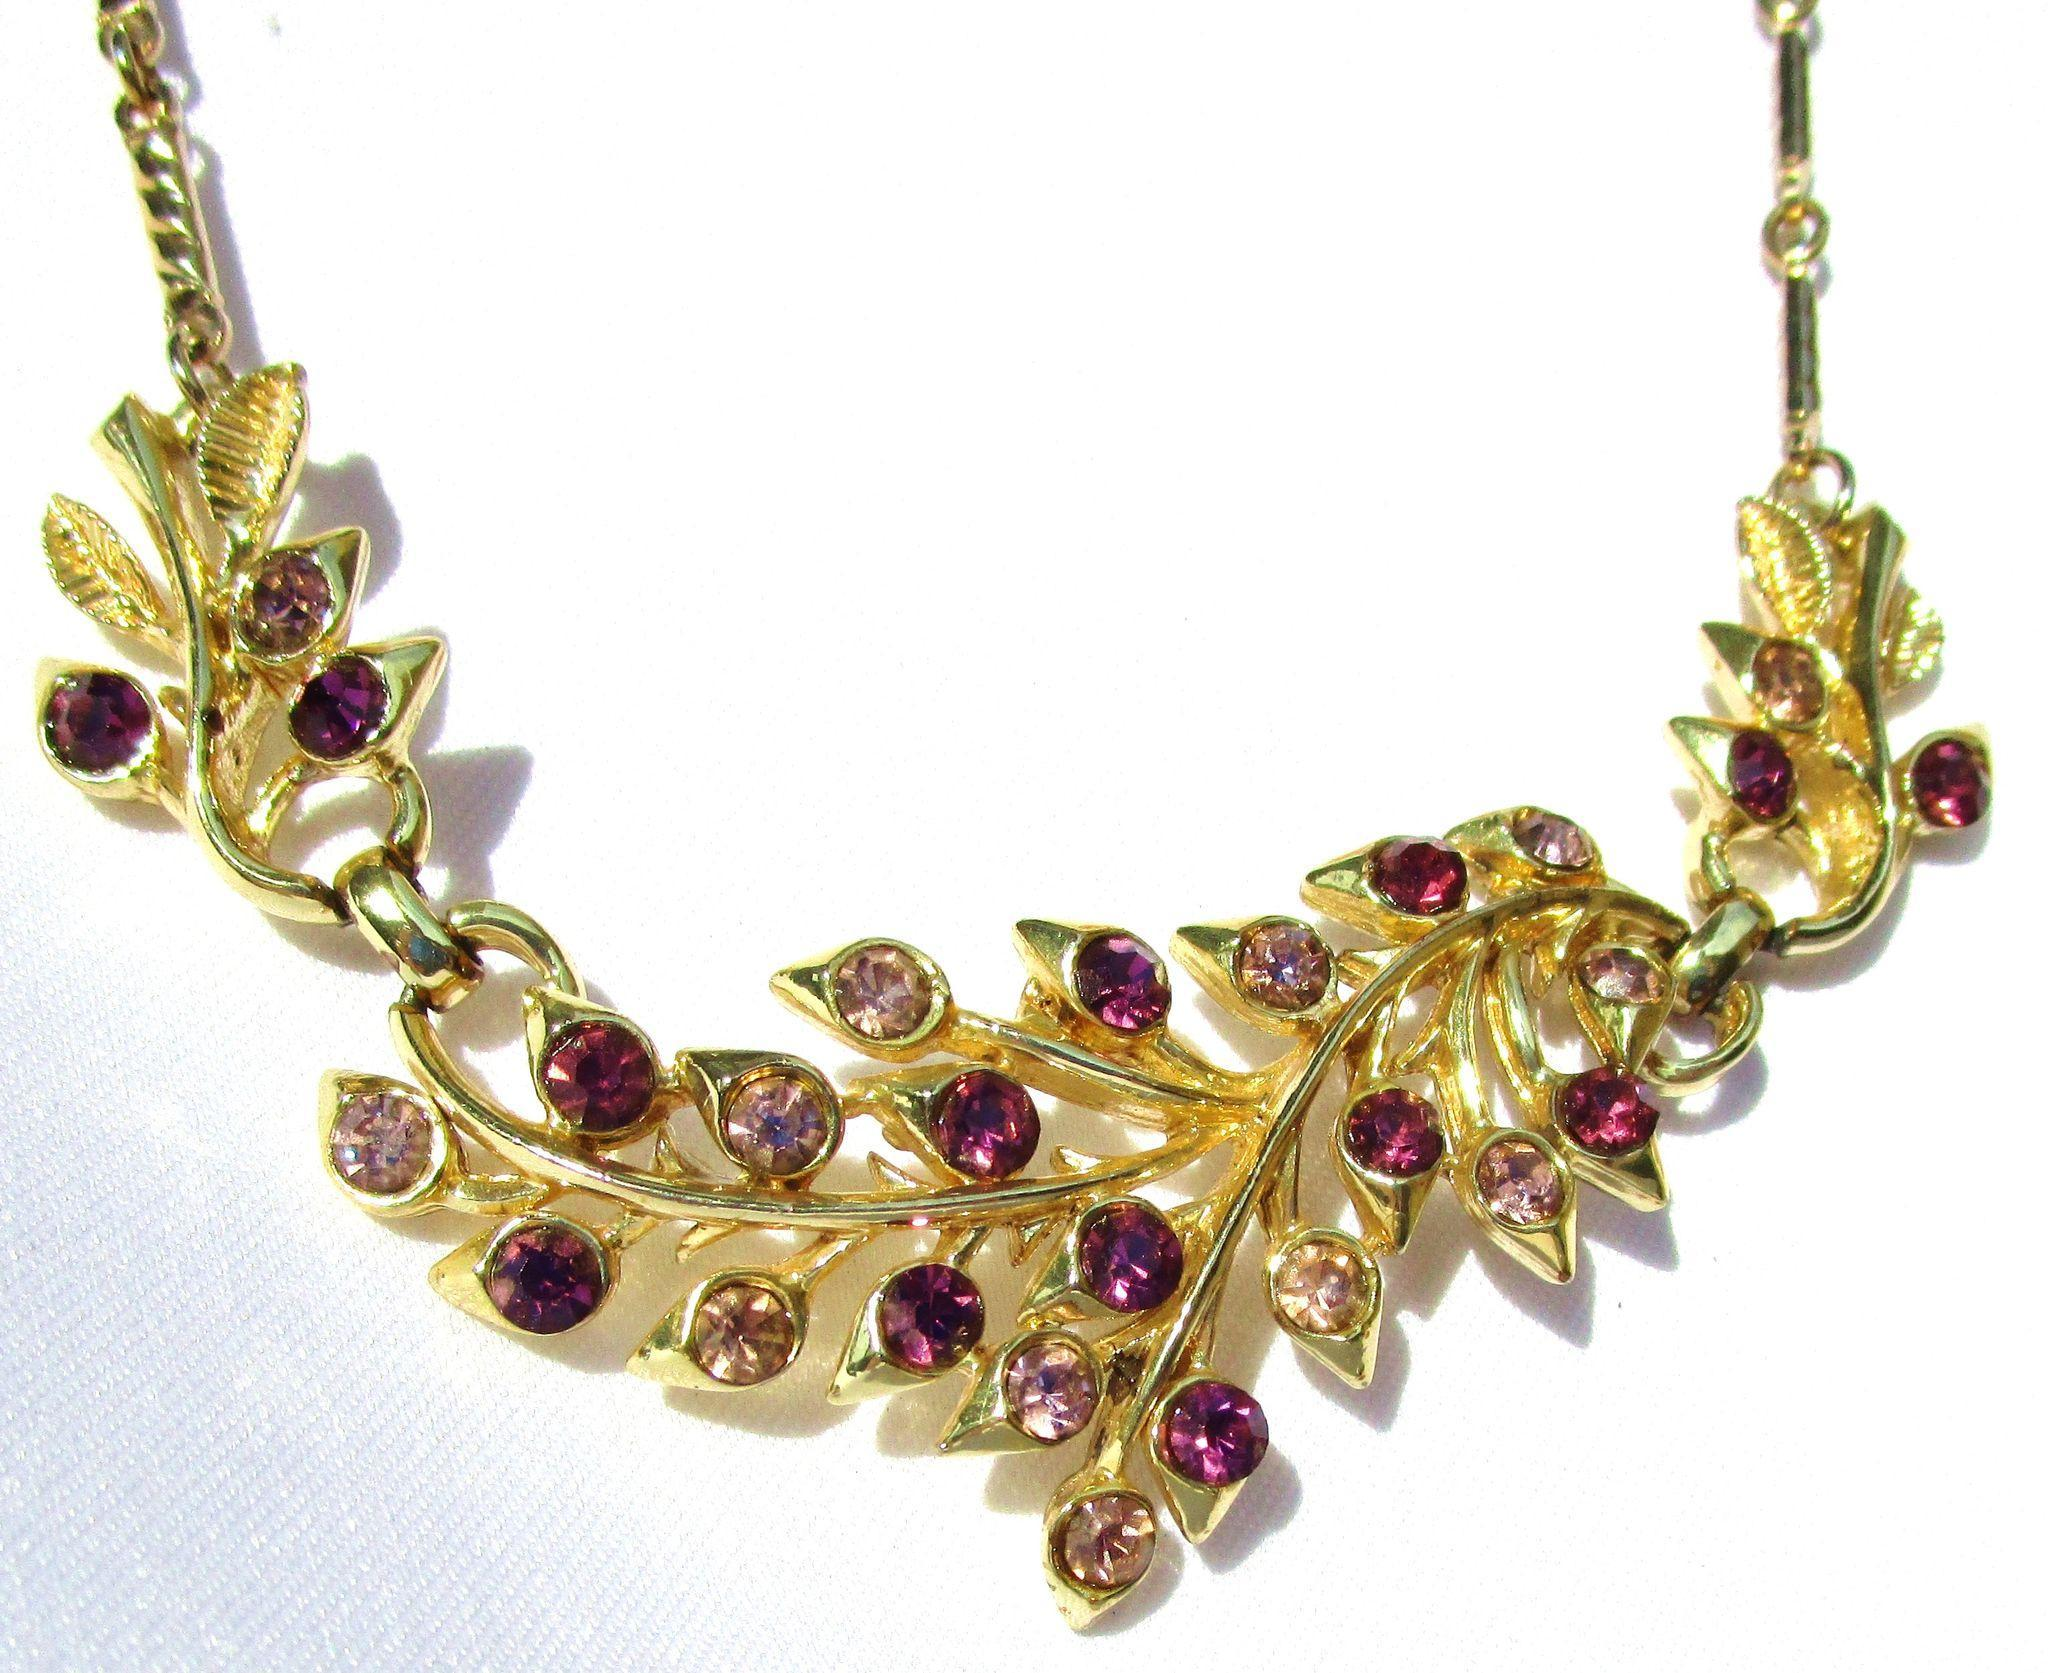 Vintage Coro Gold Tone/Purple Necklace